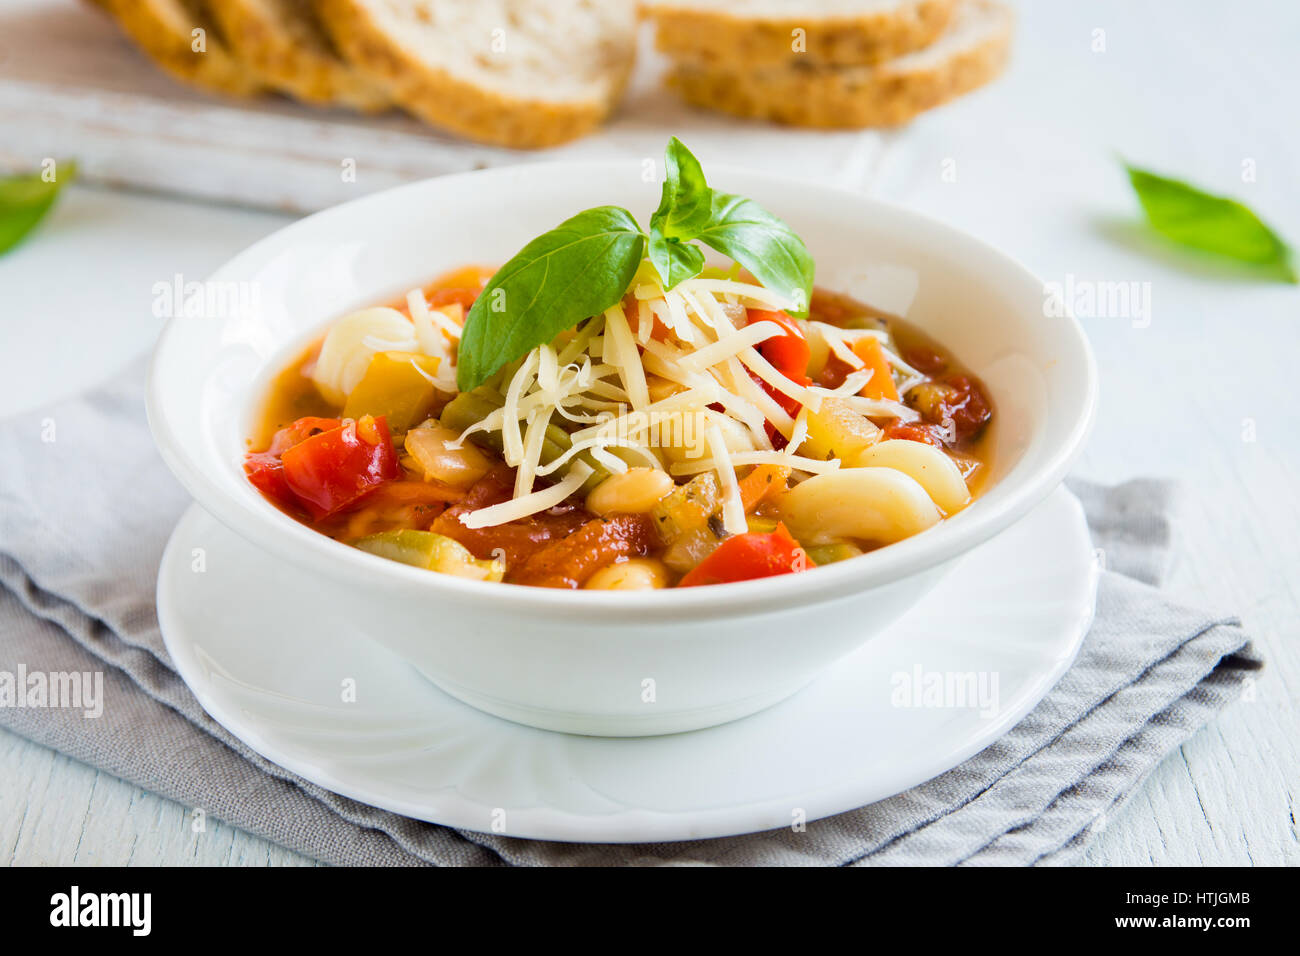 Homemade Italian Minestrone Soup with Cheese and Basil - healthy homemade hot vegetarian diet vegan meal food soup - Stock Image